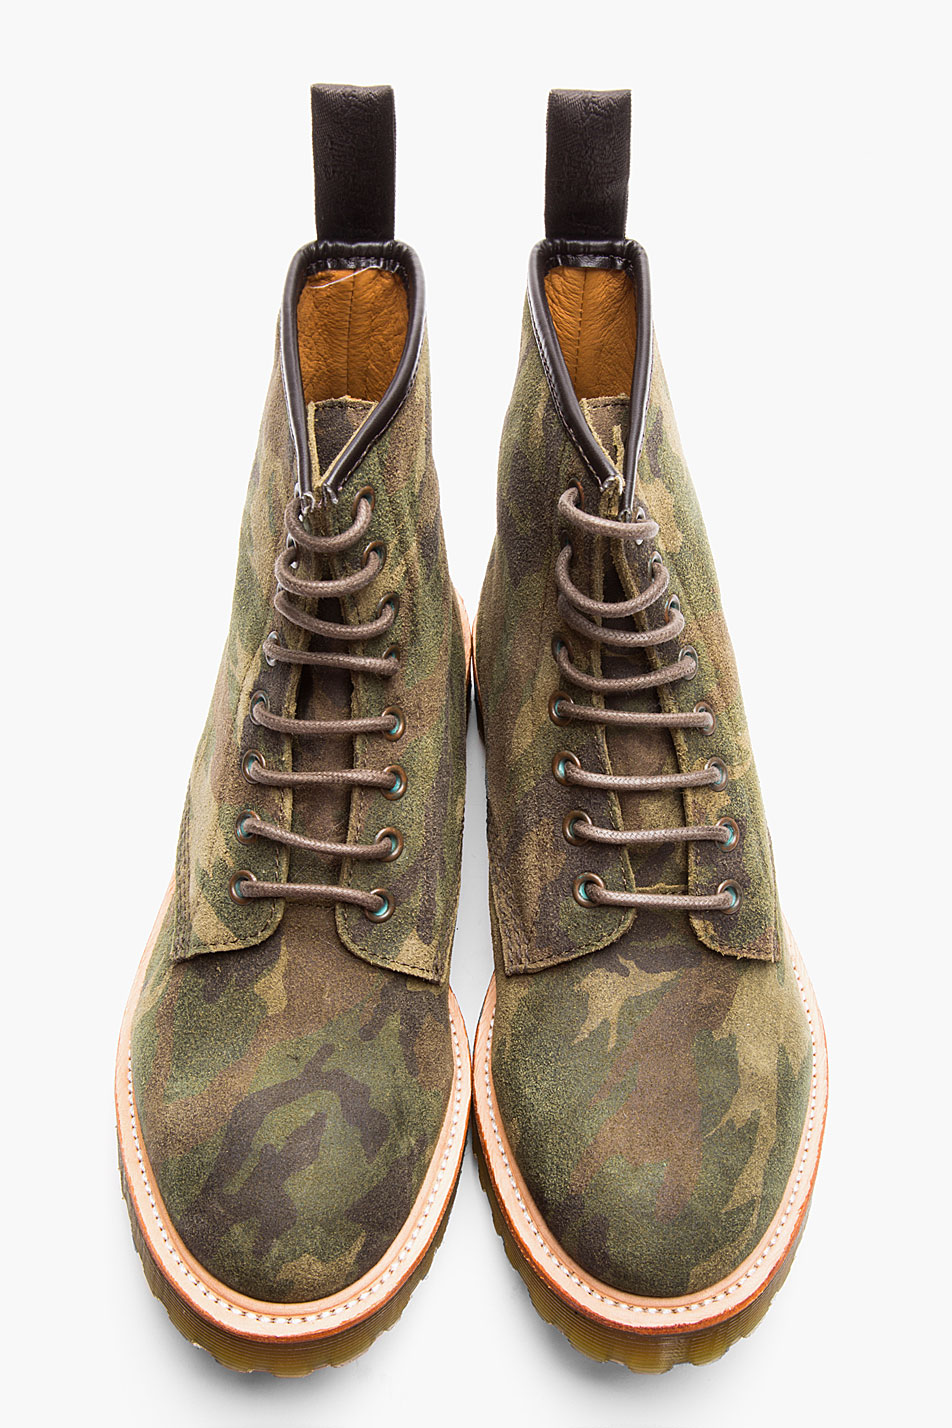 Green Camo 1460 8-eye boot Dr. Martens Rugged suede men style 1